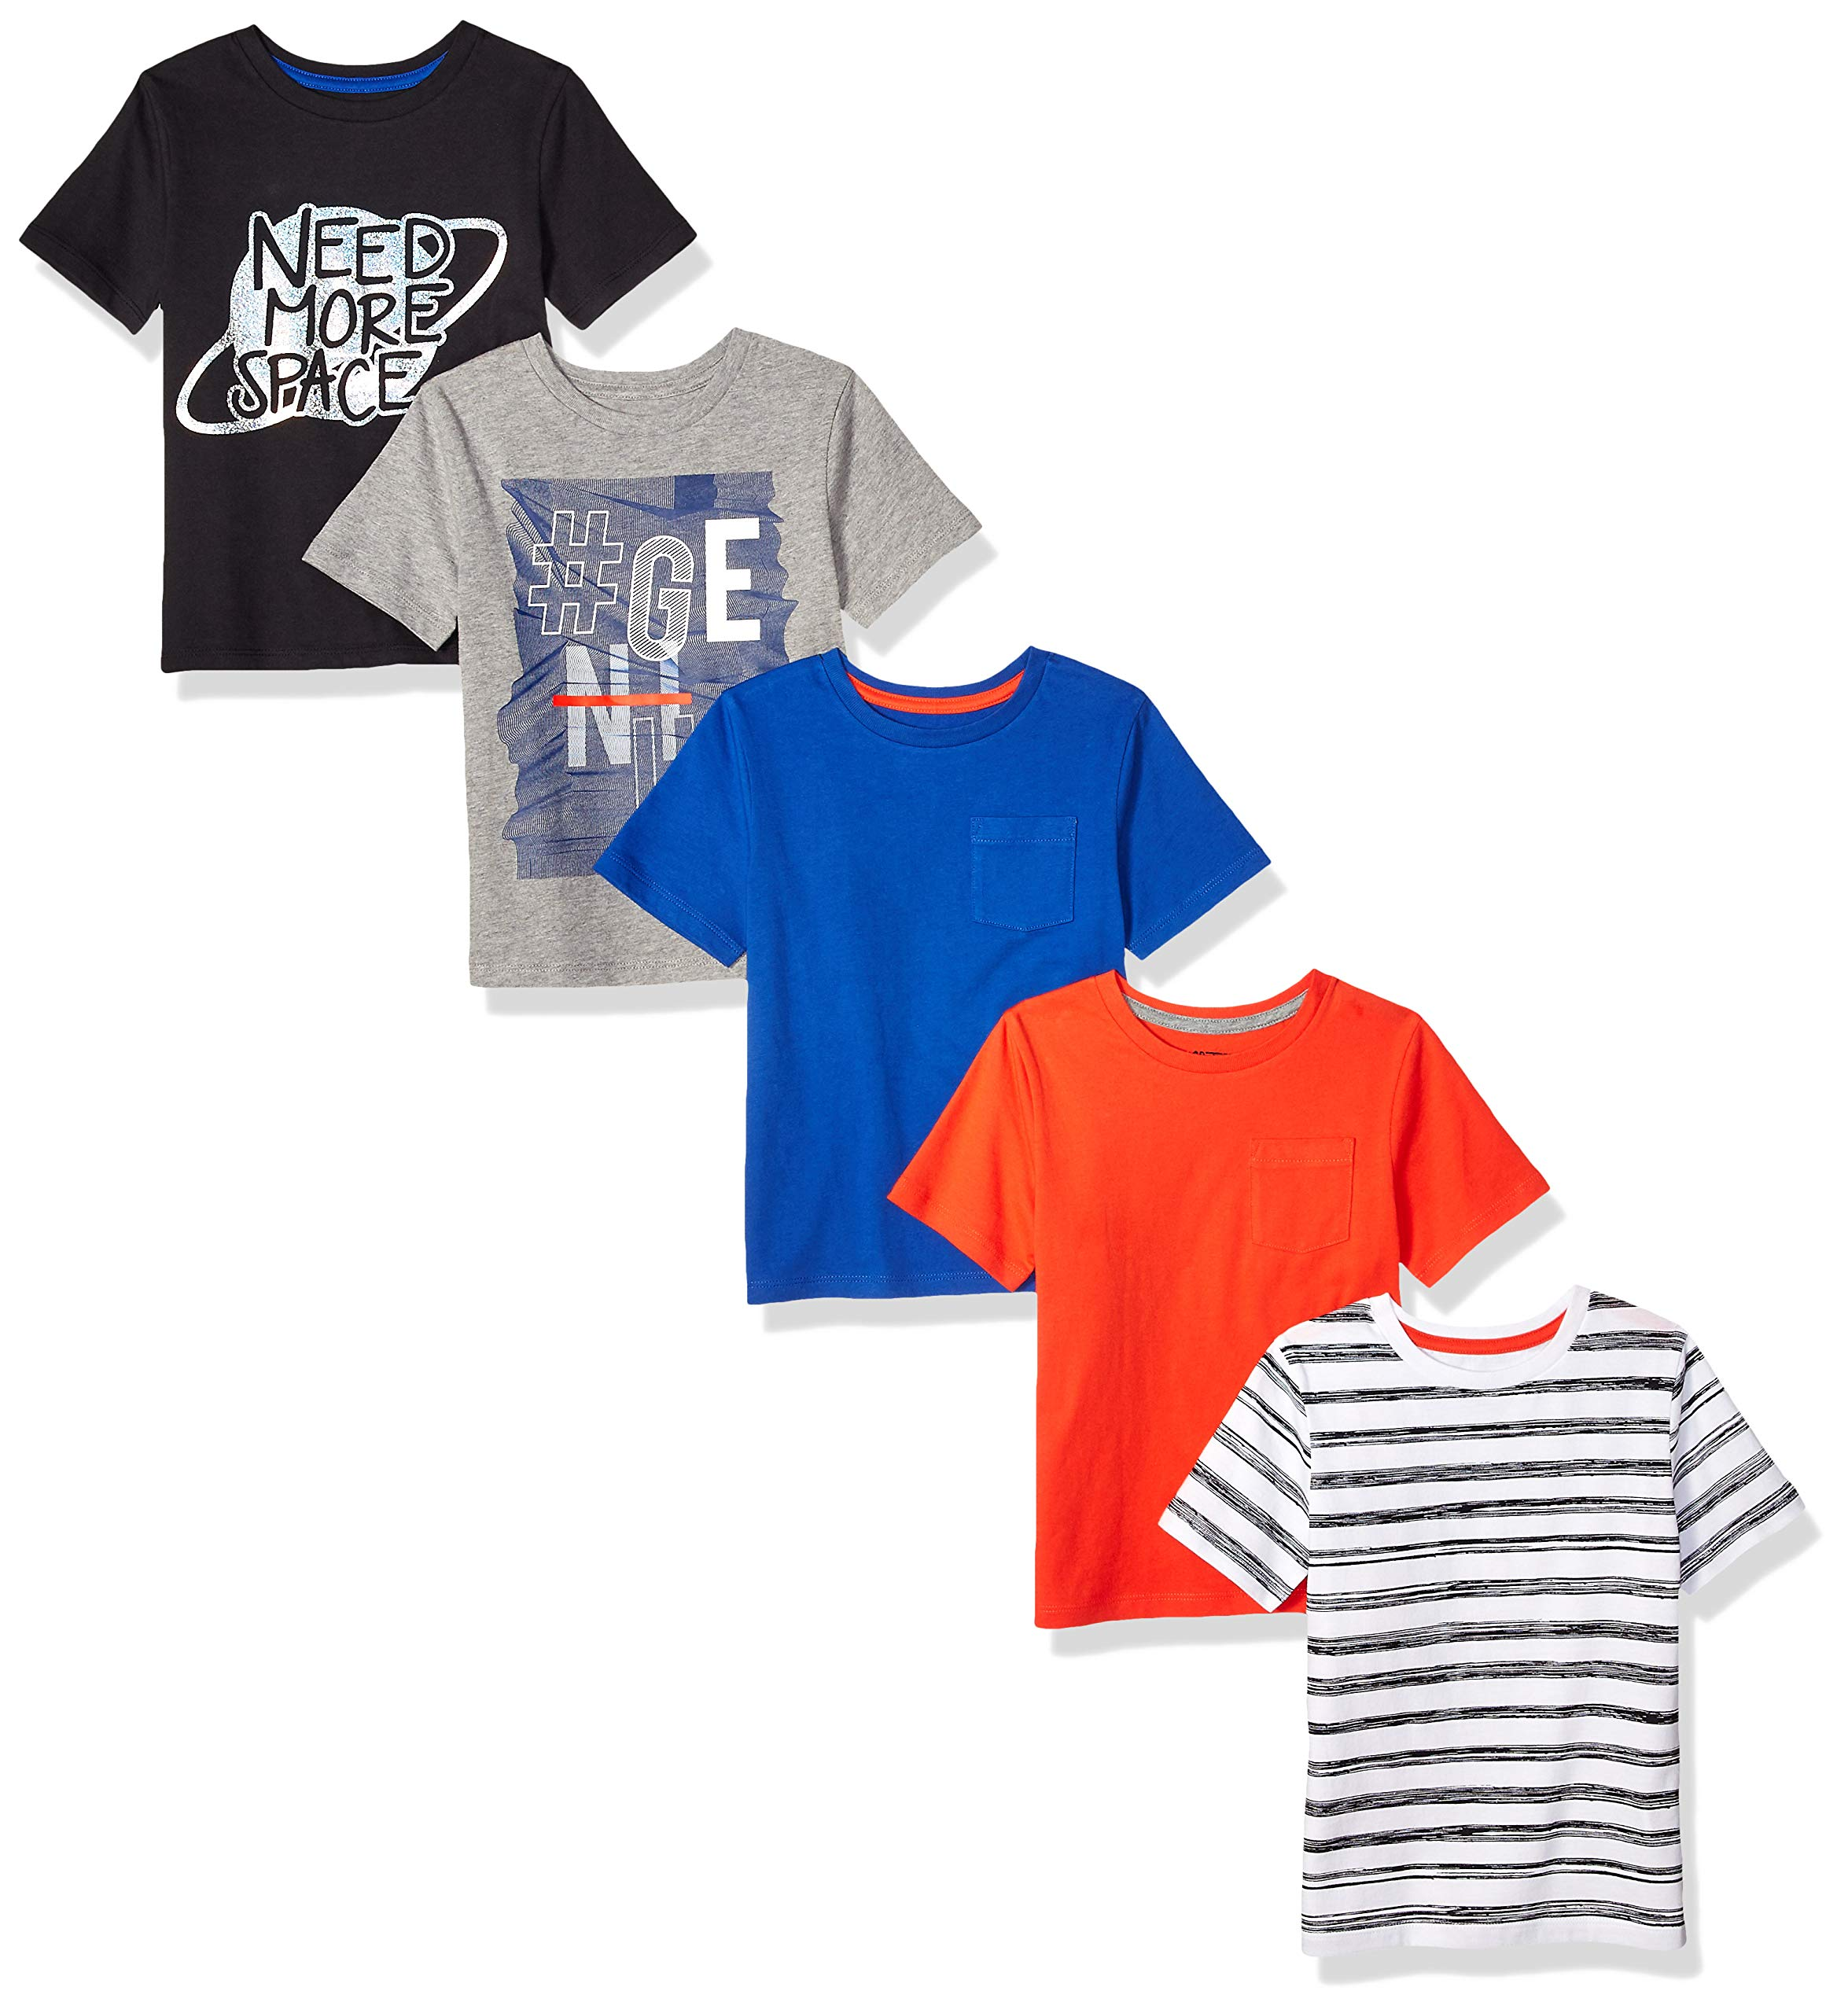 Amazon Brand - Spotted Zebra Boys' Big Kid 5-Pack Short-Sleeve T-Shirts, Need Space, Large (10)